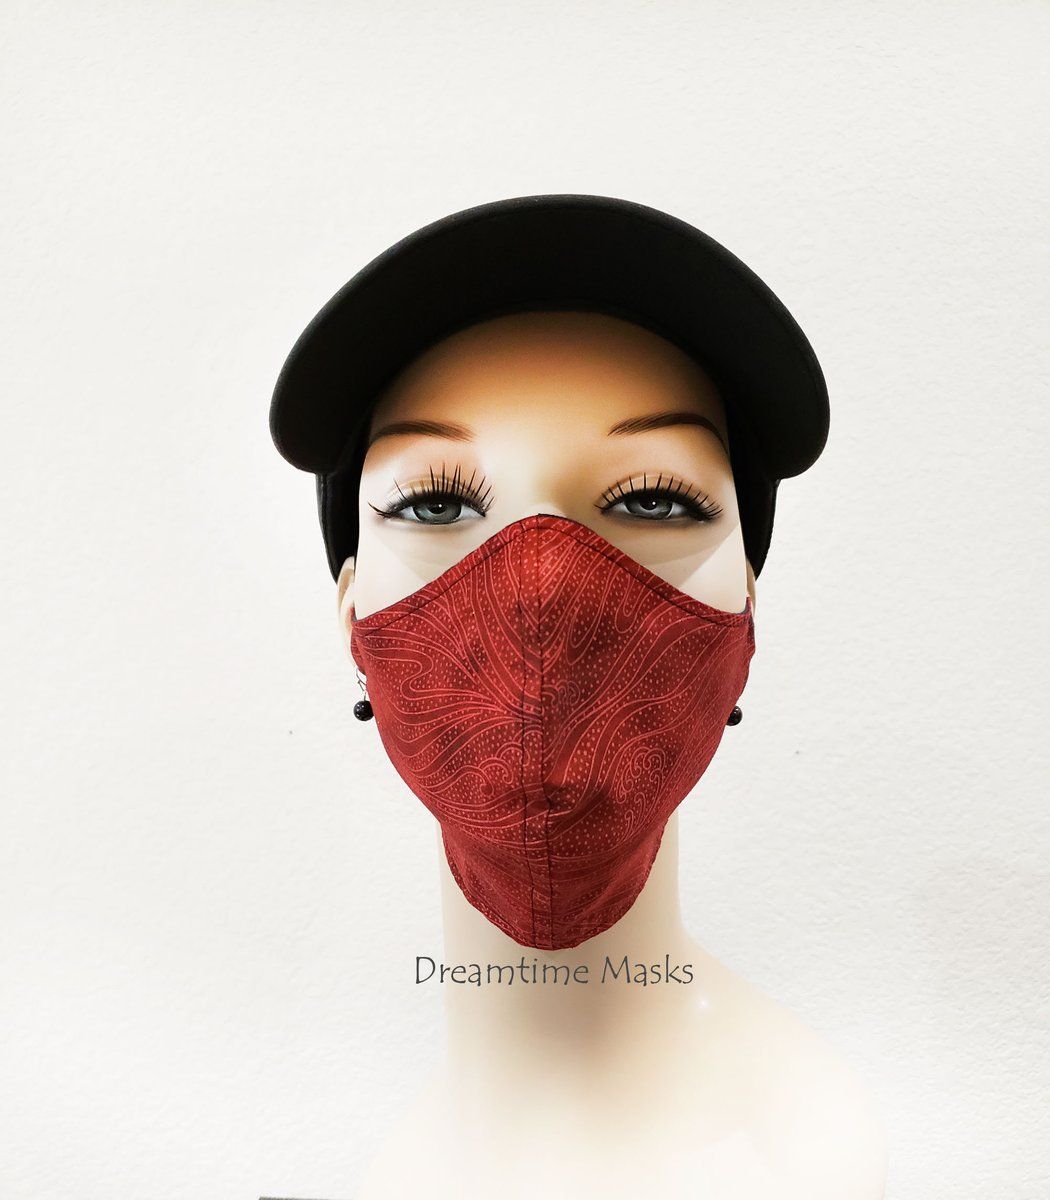 Red Face Mask Washable Cotton Over The Head Face Mask Scarlet Crimson Ruby Red Print Face Covering https://t.co/cEezdiO9Tl #staysafe #facemask #facemasks #stayhome #Etsy #wearthedammmask https://t.co/lHhvjnebdl